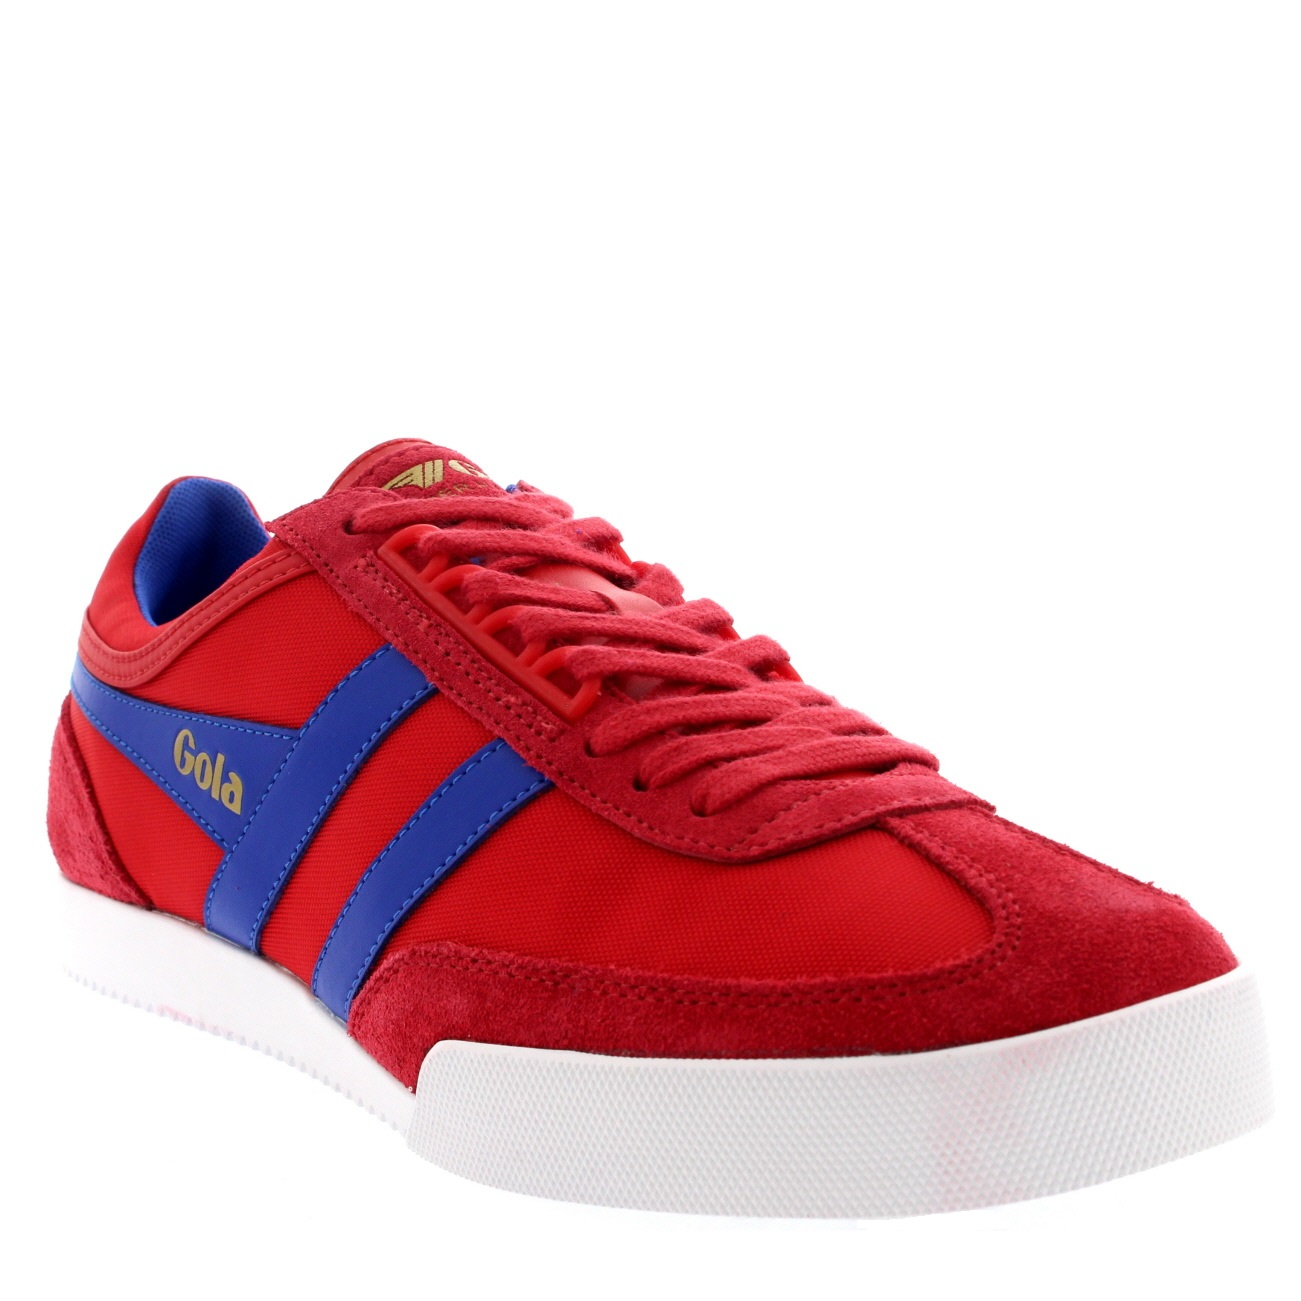 2030f8e9d7ae Ladies Gola Harrier Suede Lace Up Sporty Active Casual Retro ...